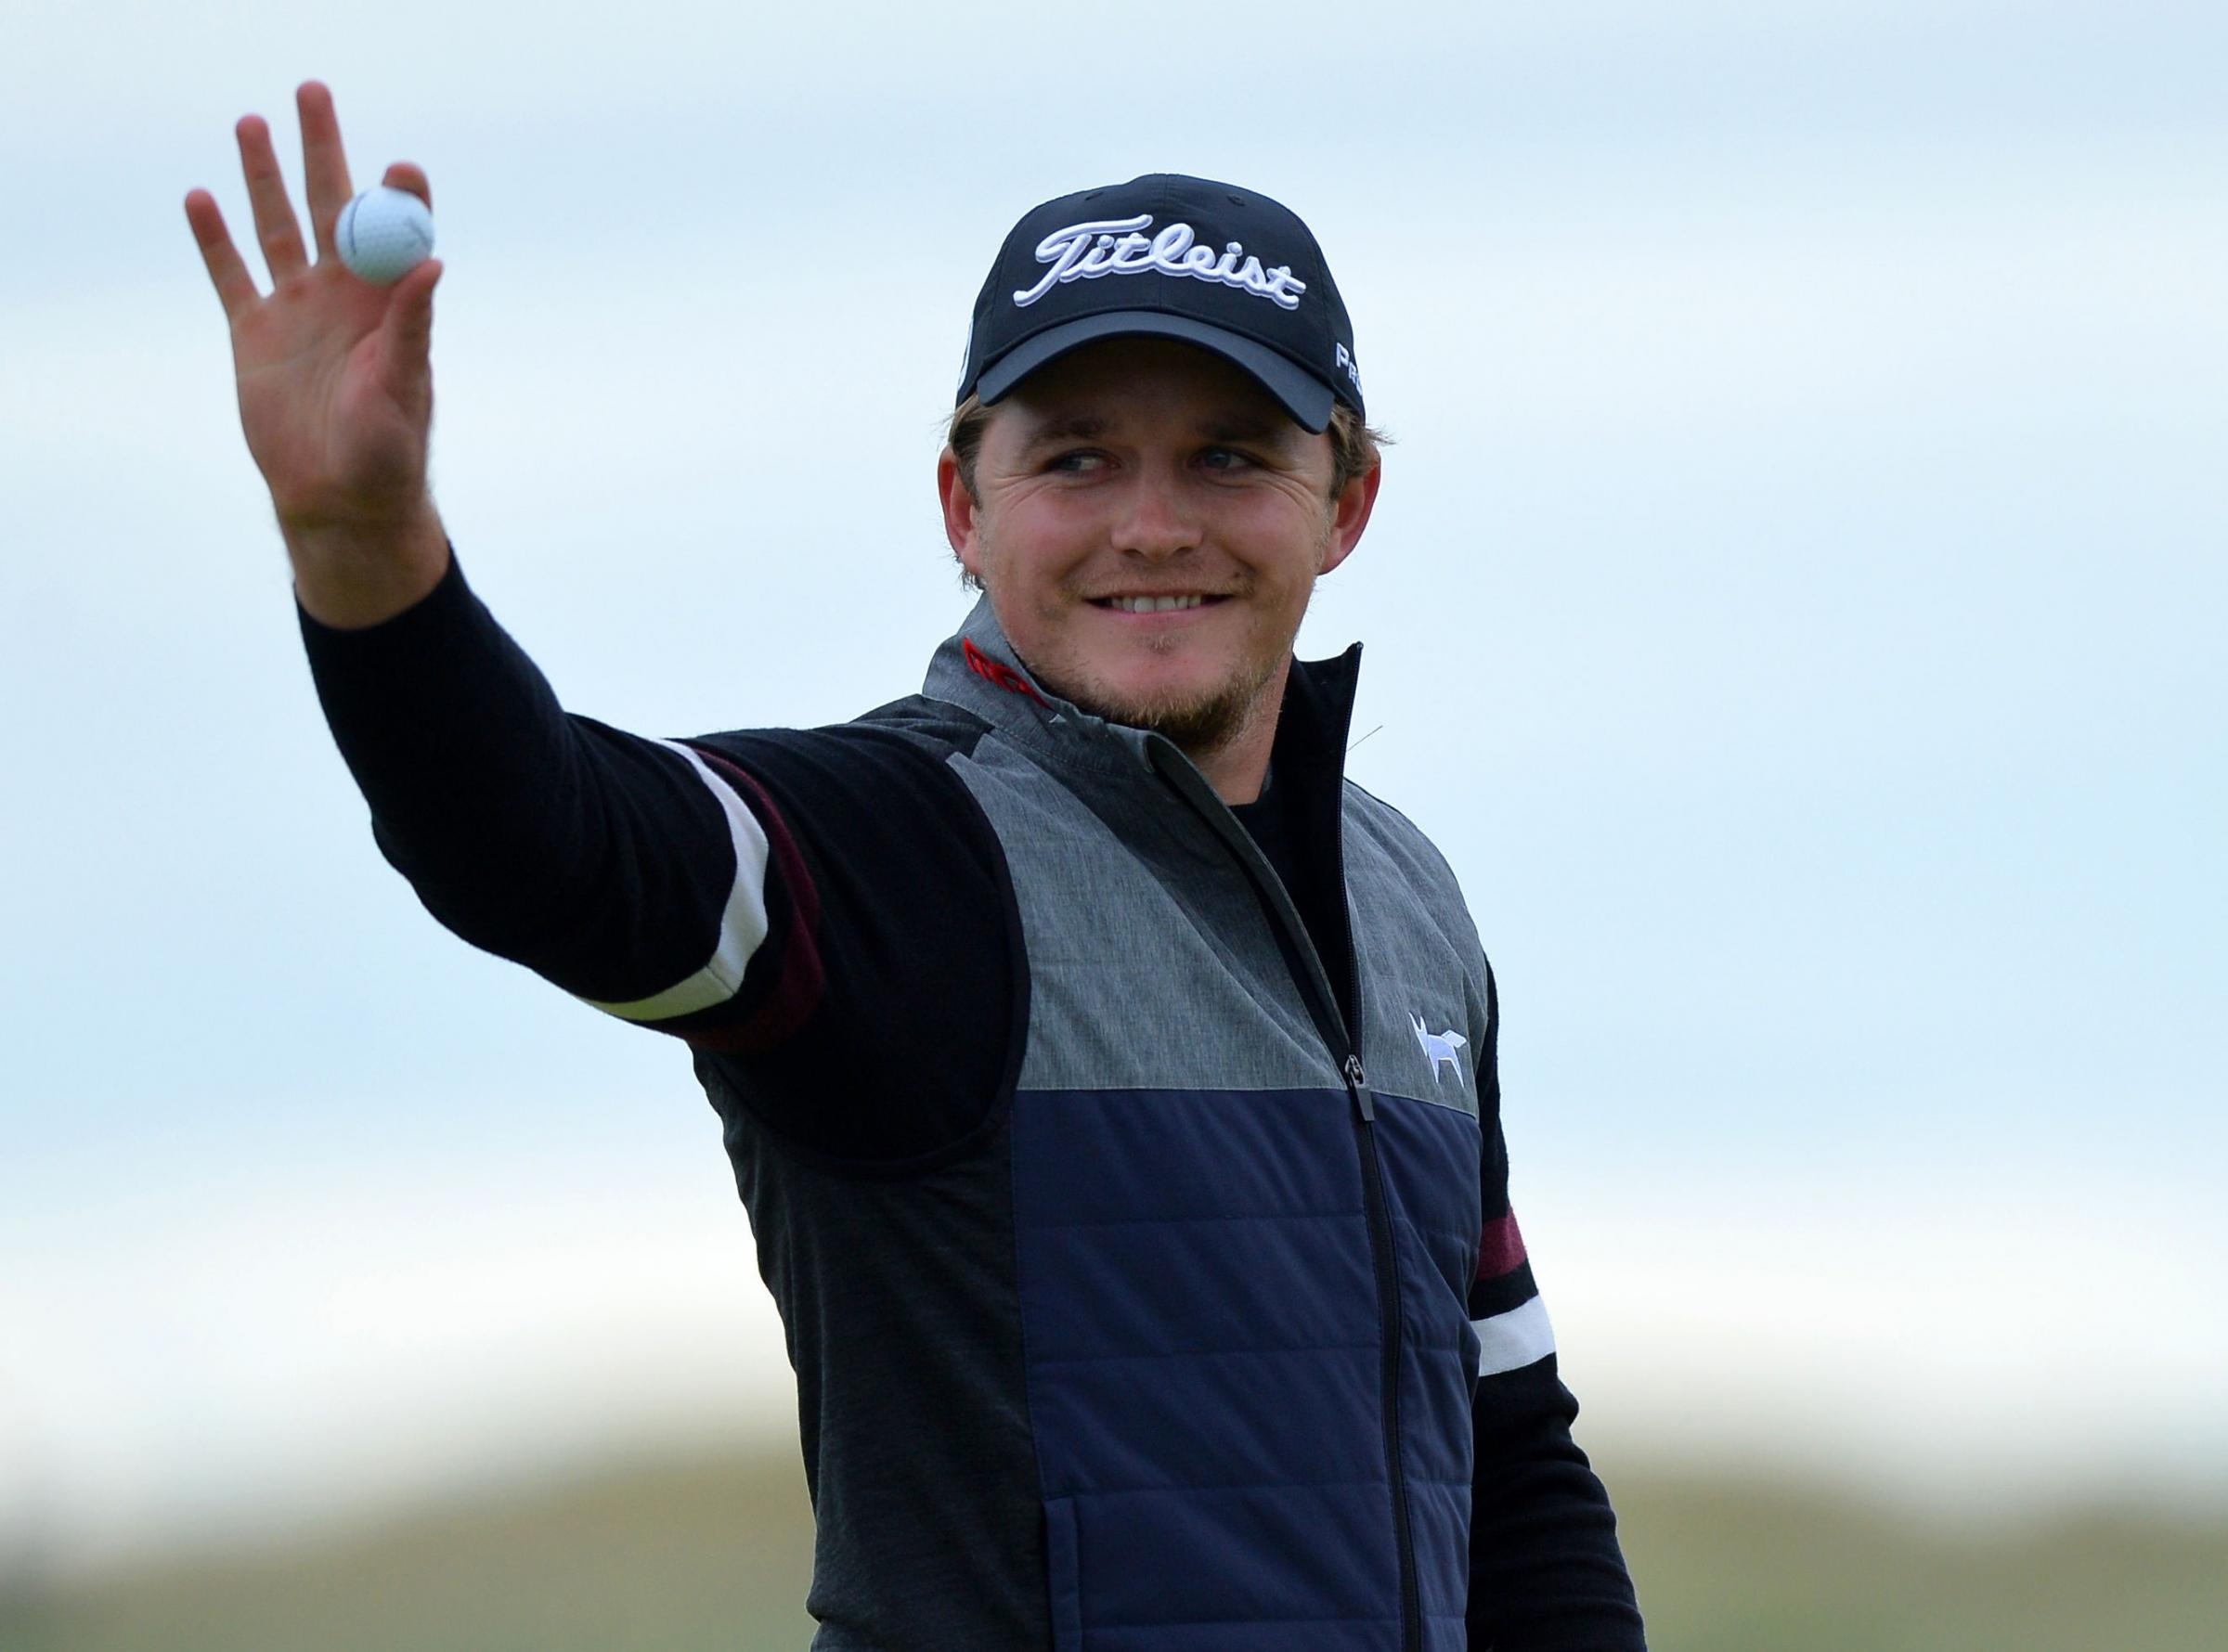 GOLF: Eddie Pepperell finishes joint sixth at Turkish Airlines Open